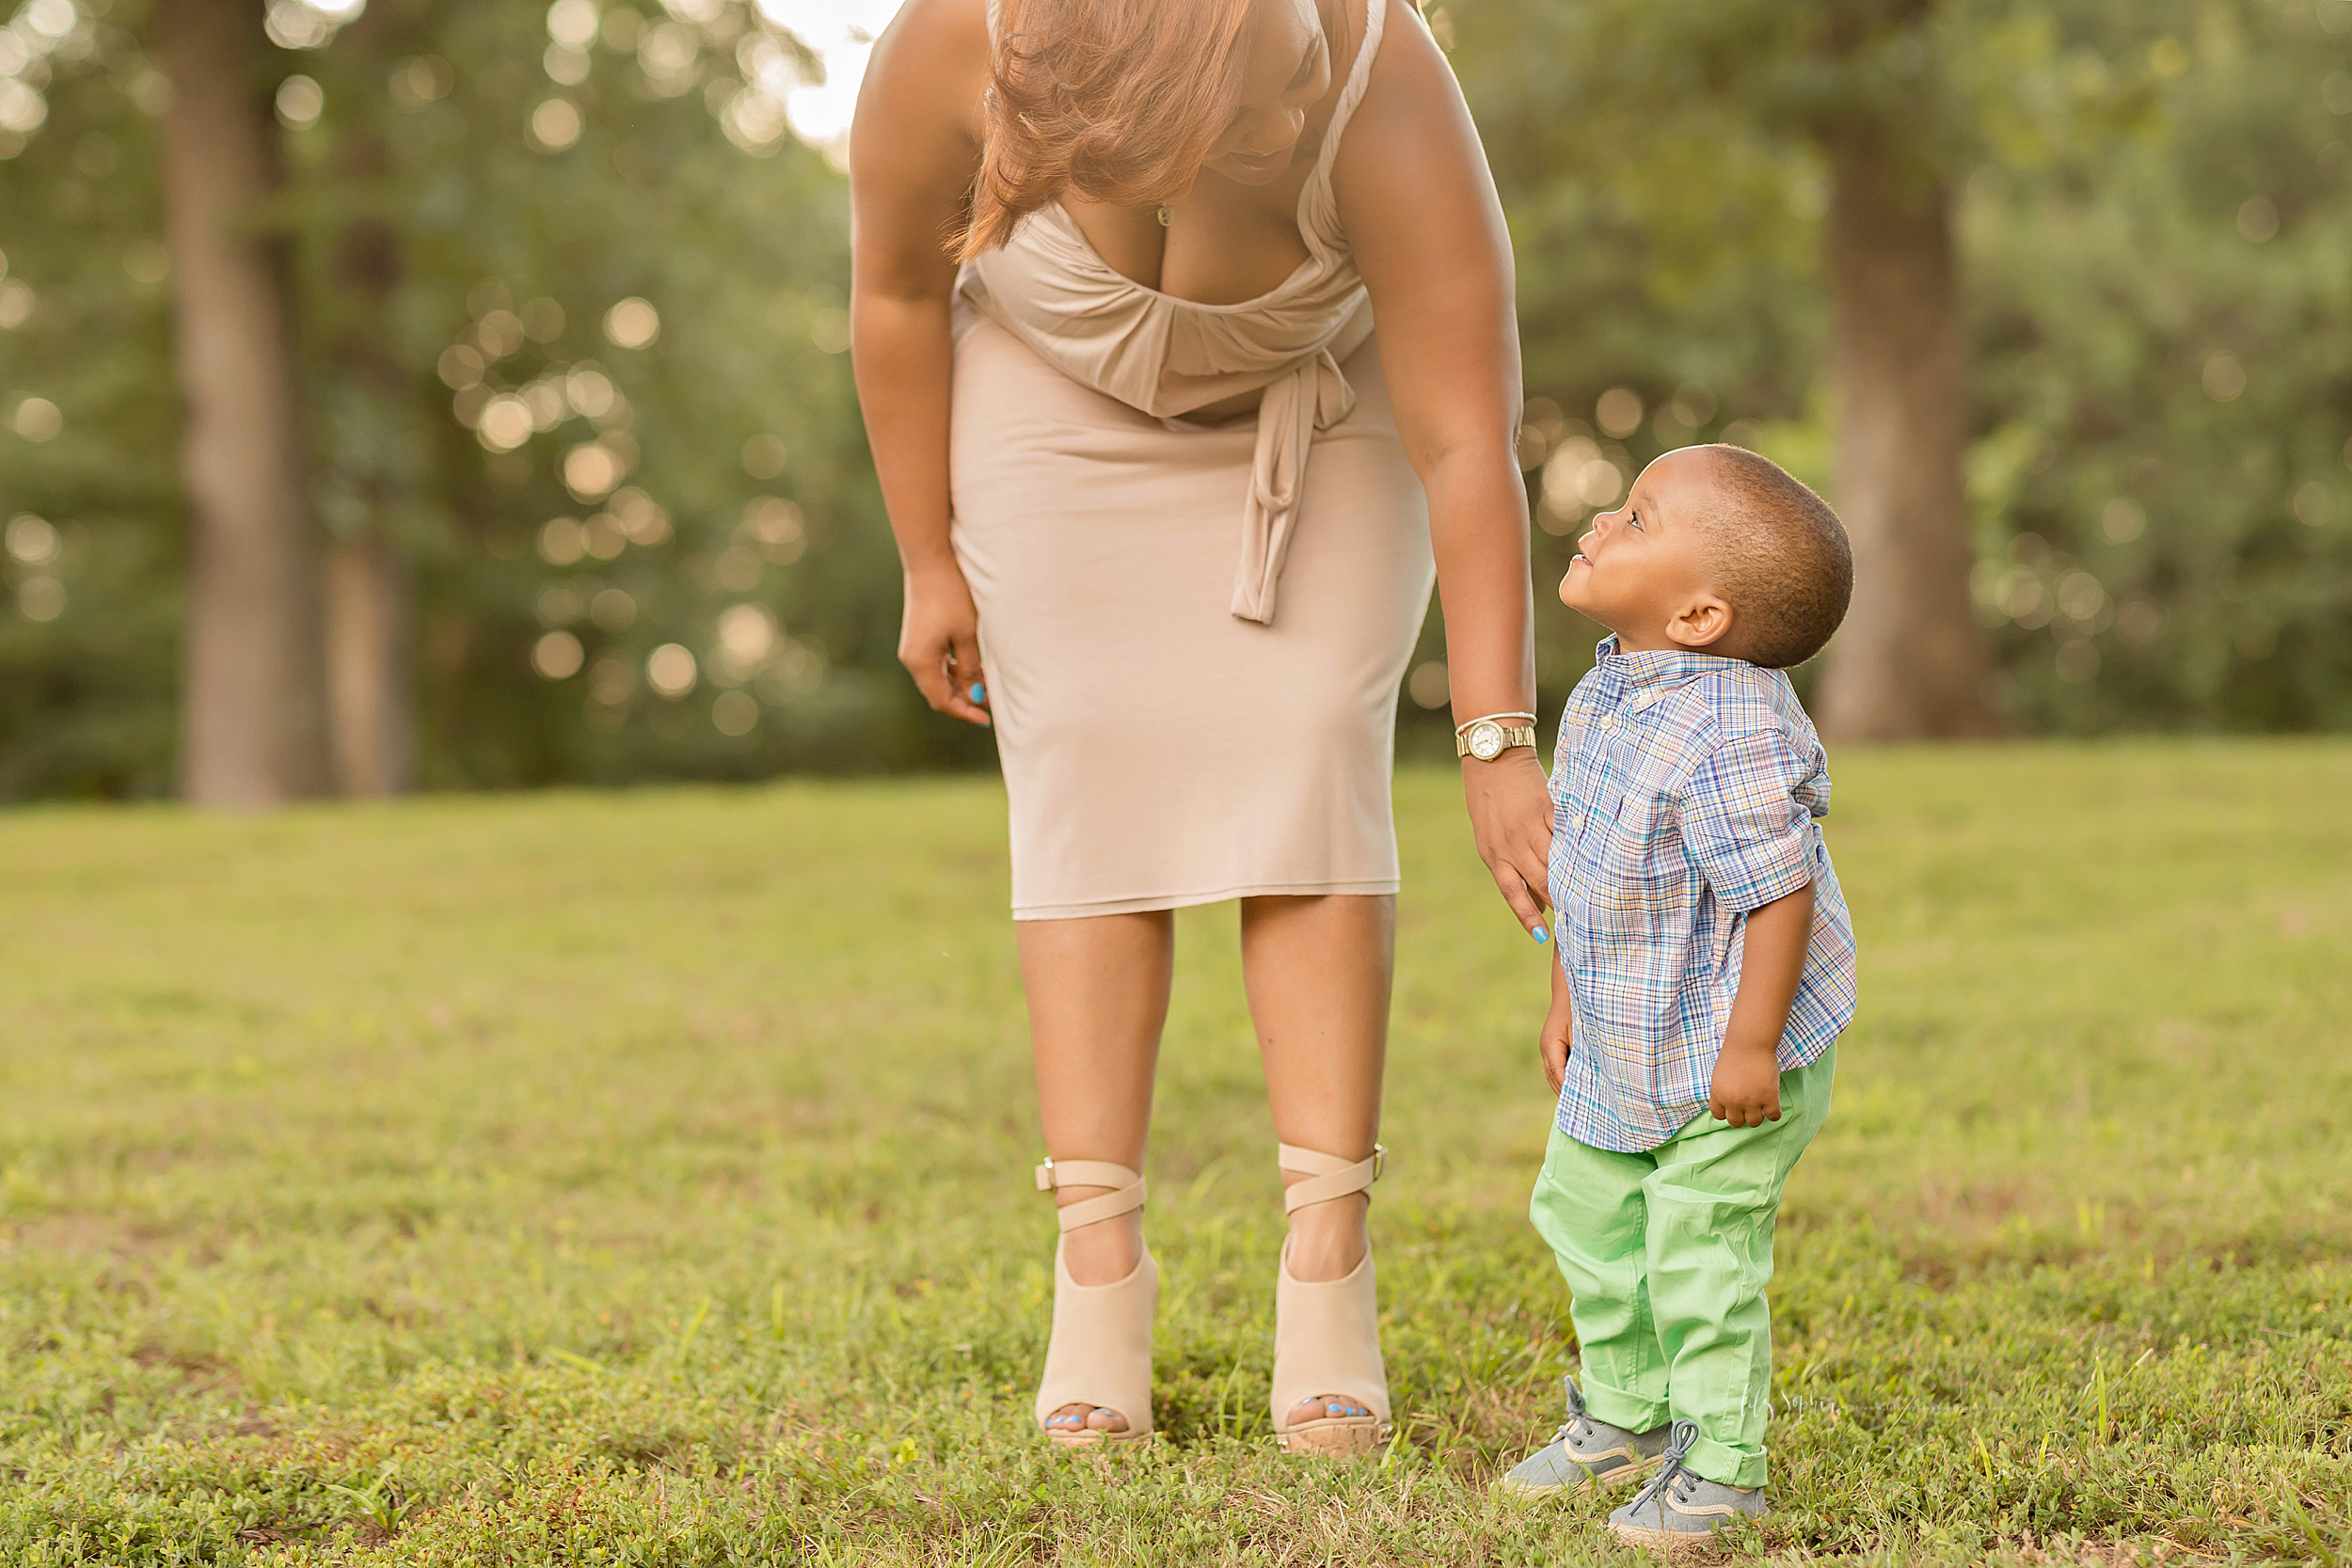 atlanta-hapeville-brookhaven-alpharetta-virginia-highlands-smyrna-decatur-lily-sophia-photography-outdoor-family-mother-toddler-son-second-birthday-park-sunset-pictures_0697.jpg